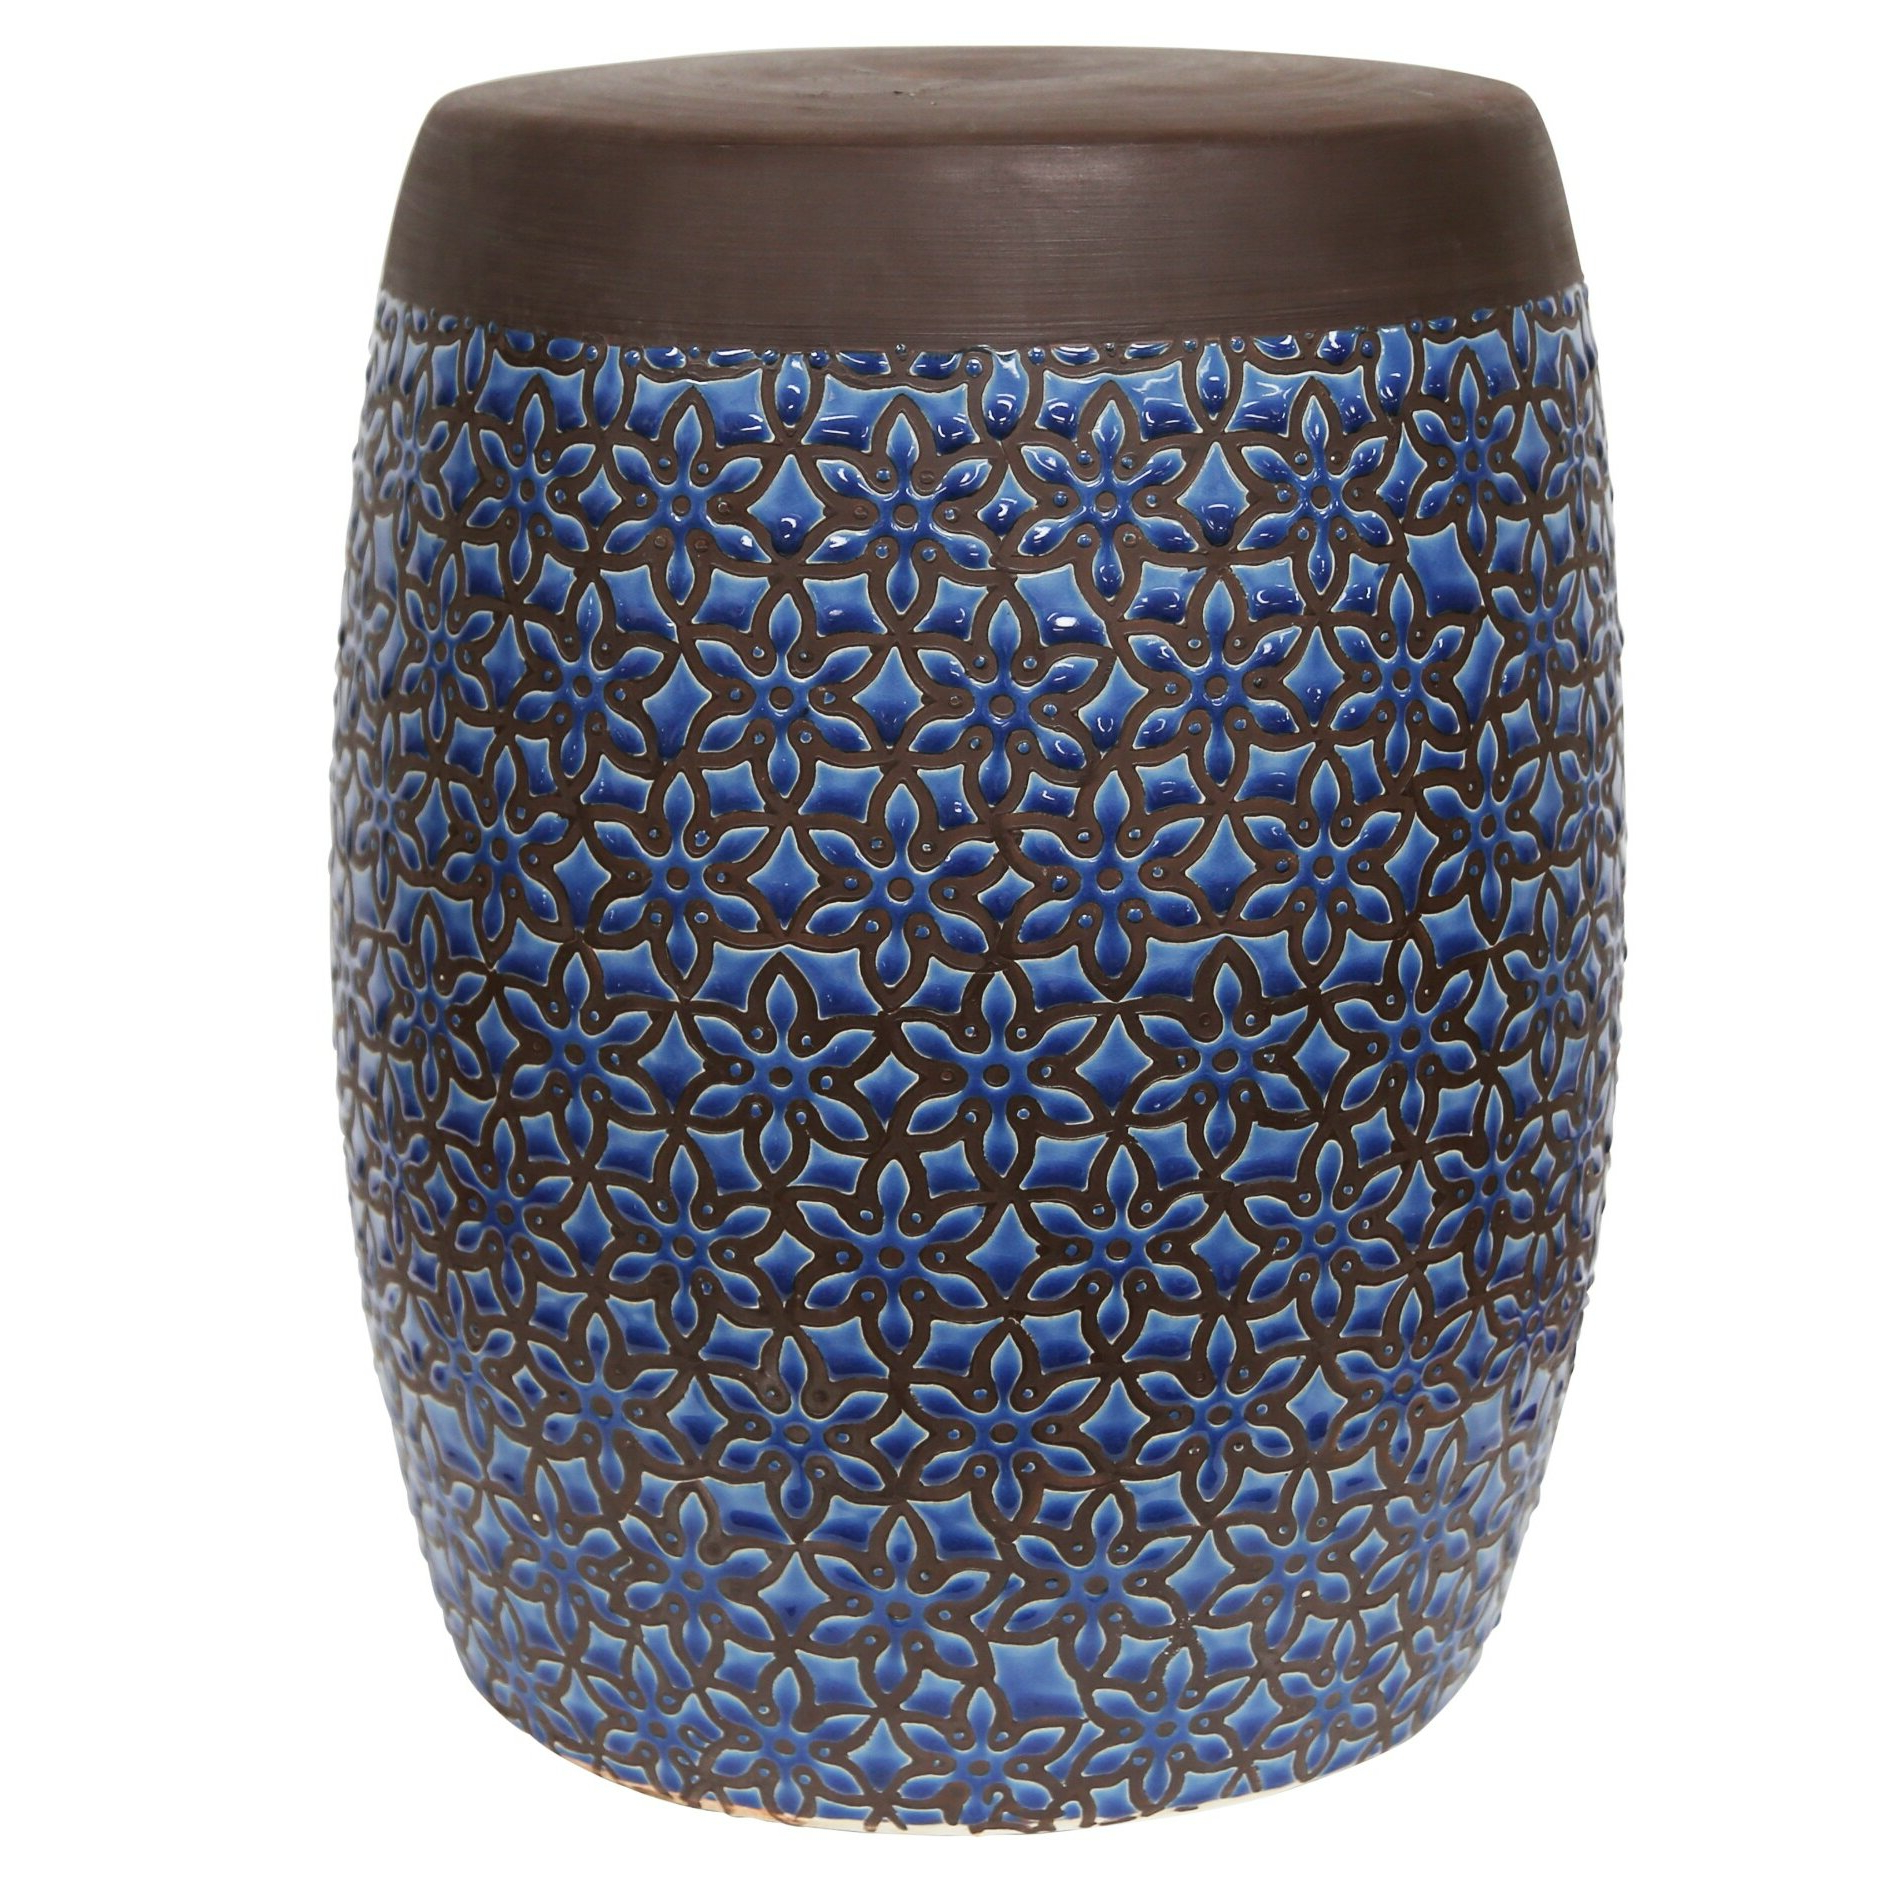 Most Recently Released Kujawa Ceramic Garden Stools Inside Zabel Ceramic Garden Stool (View 4 of 30)